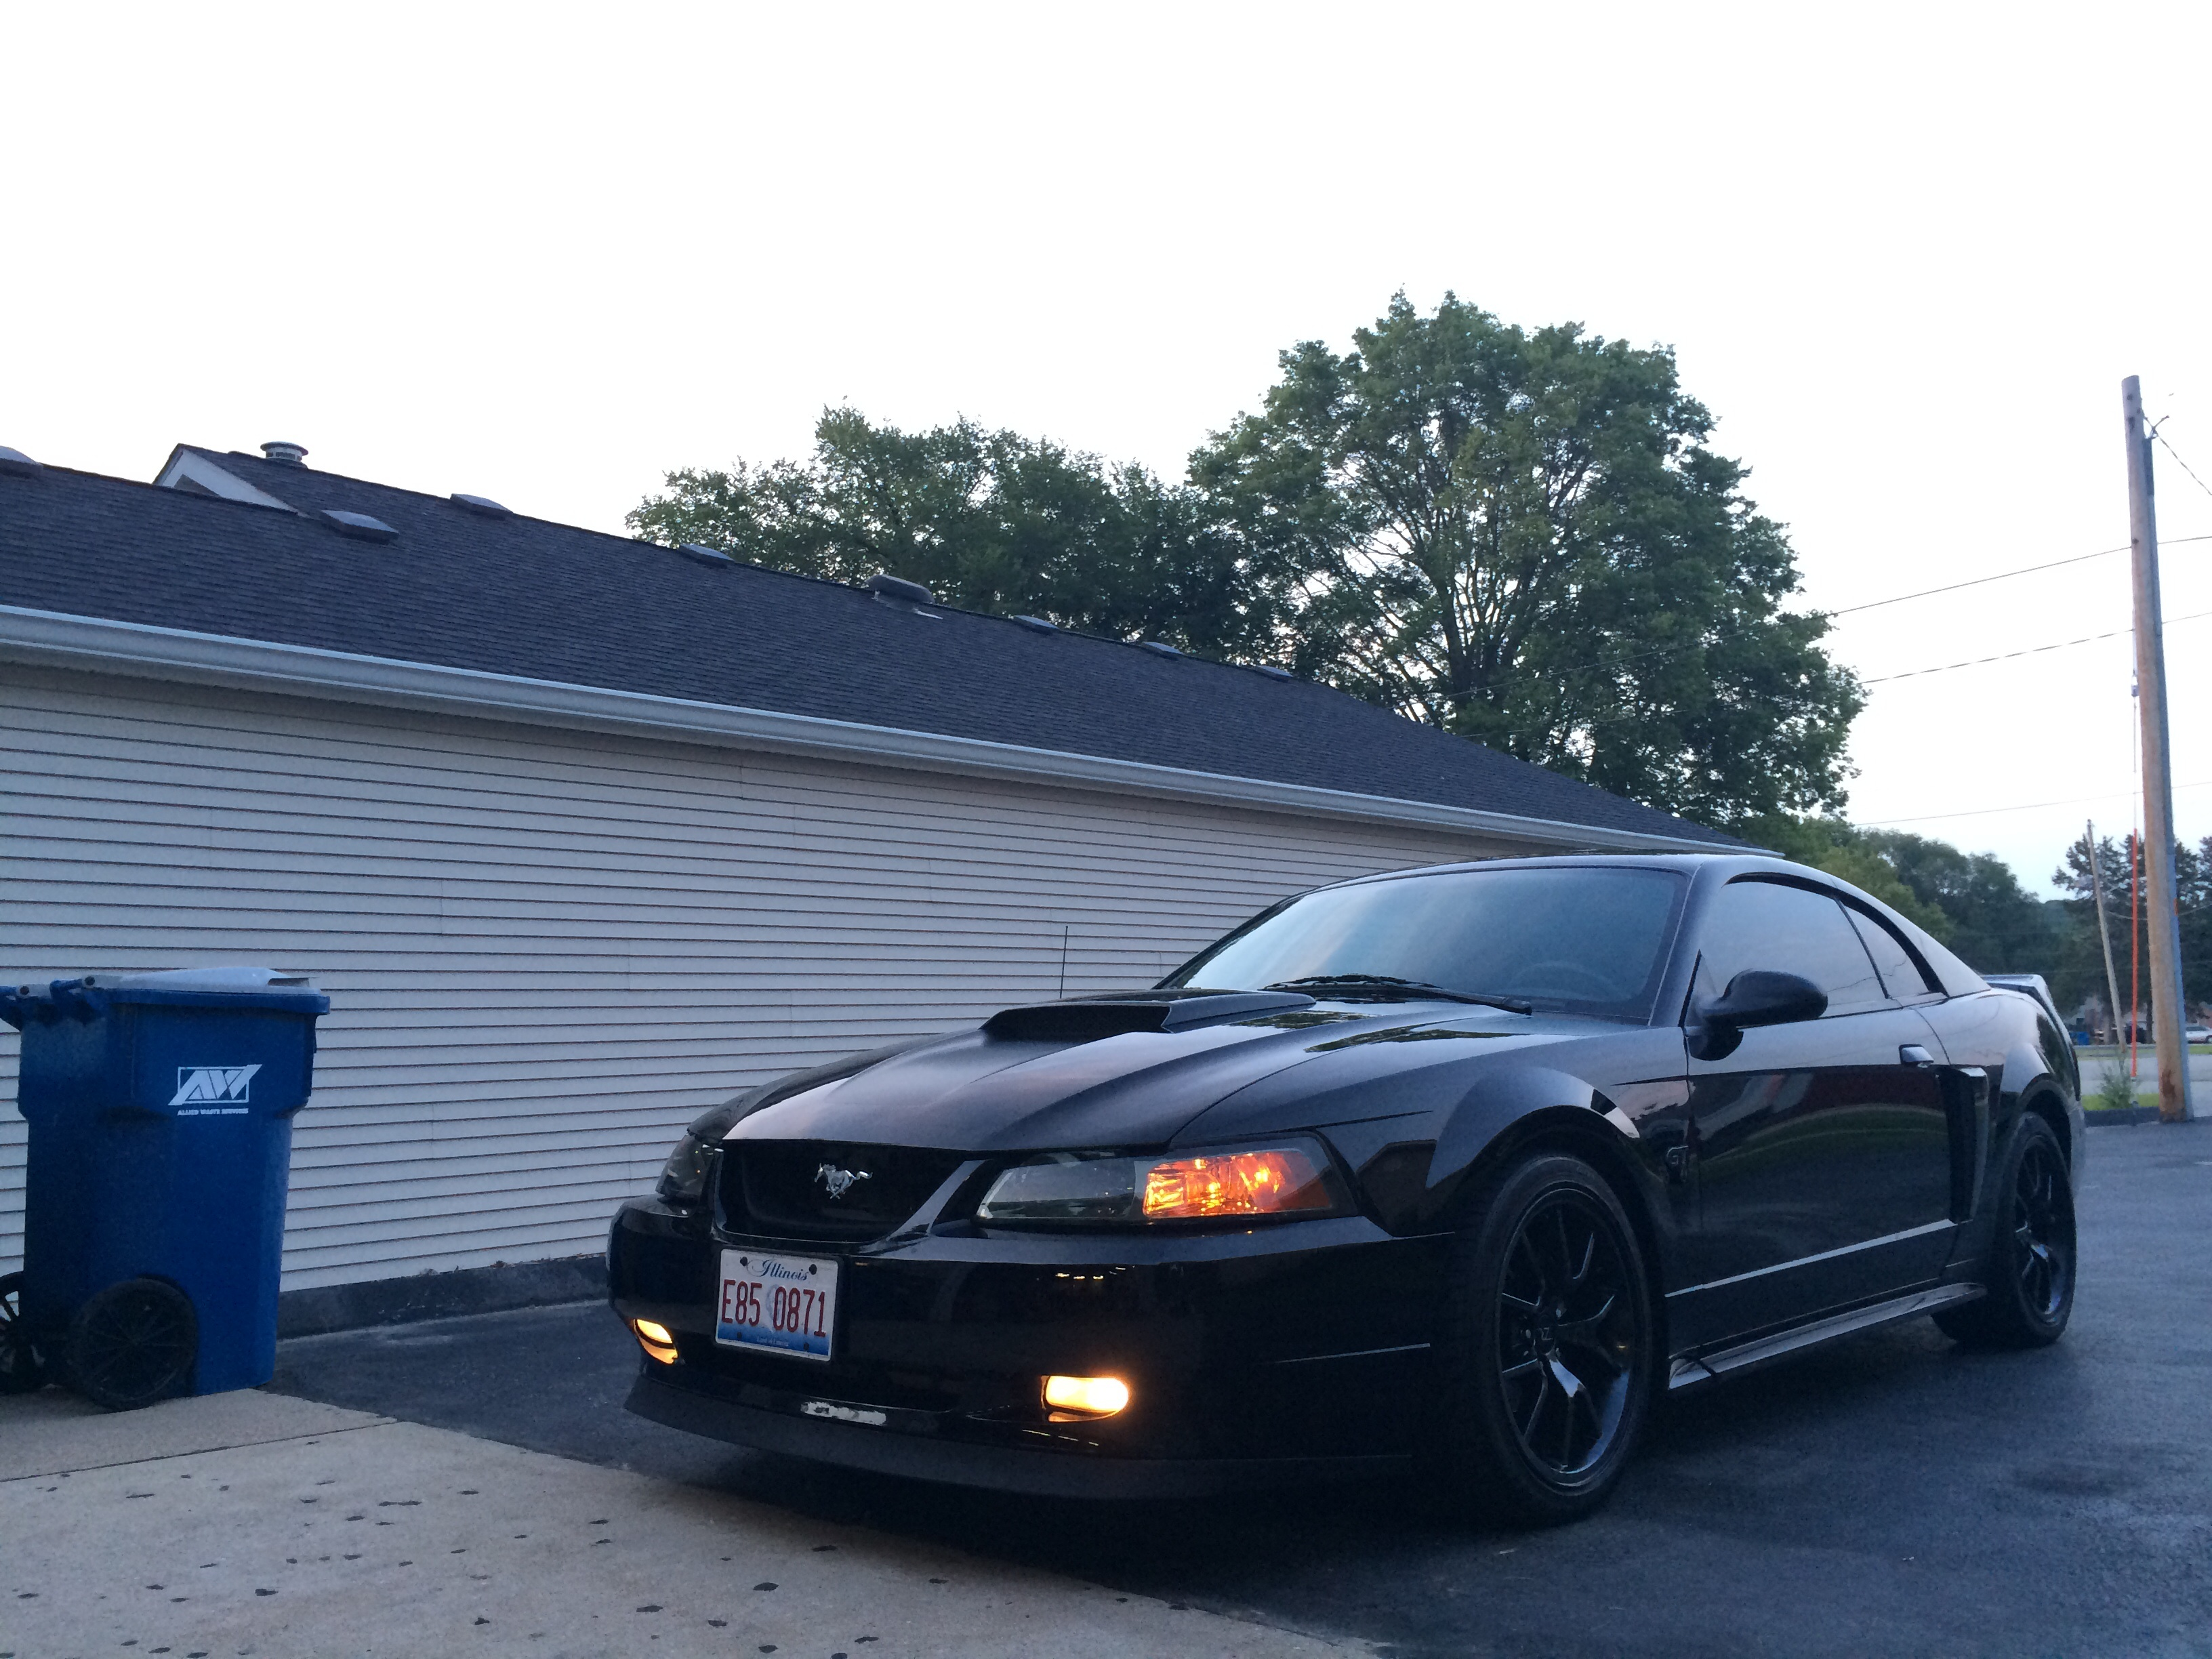 Heres my 2002 mustang gt may not be the fastest car in the world but its all mine and i couldnt love it more